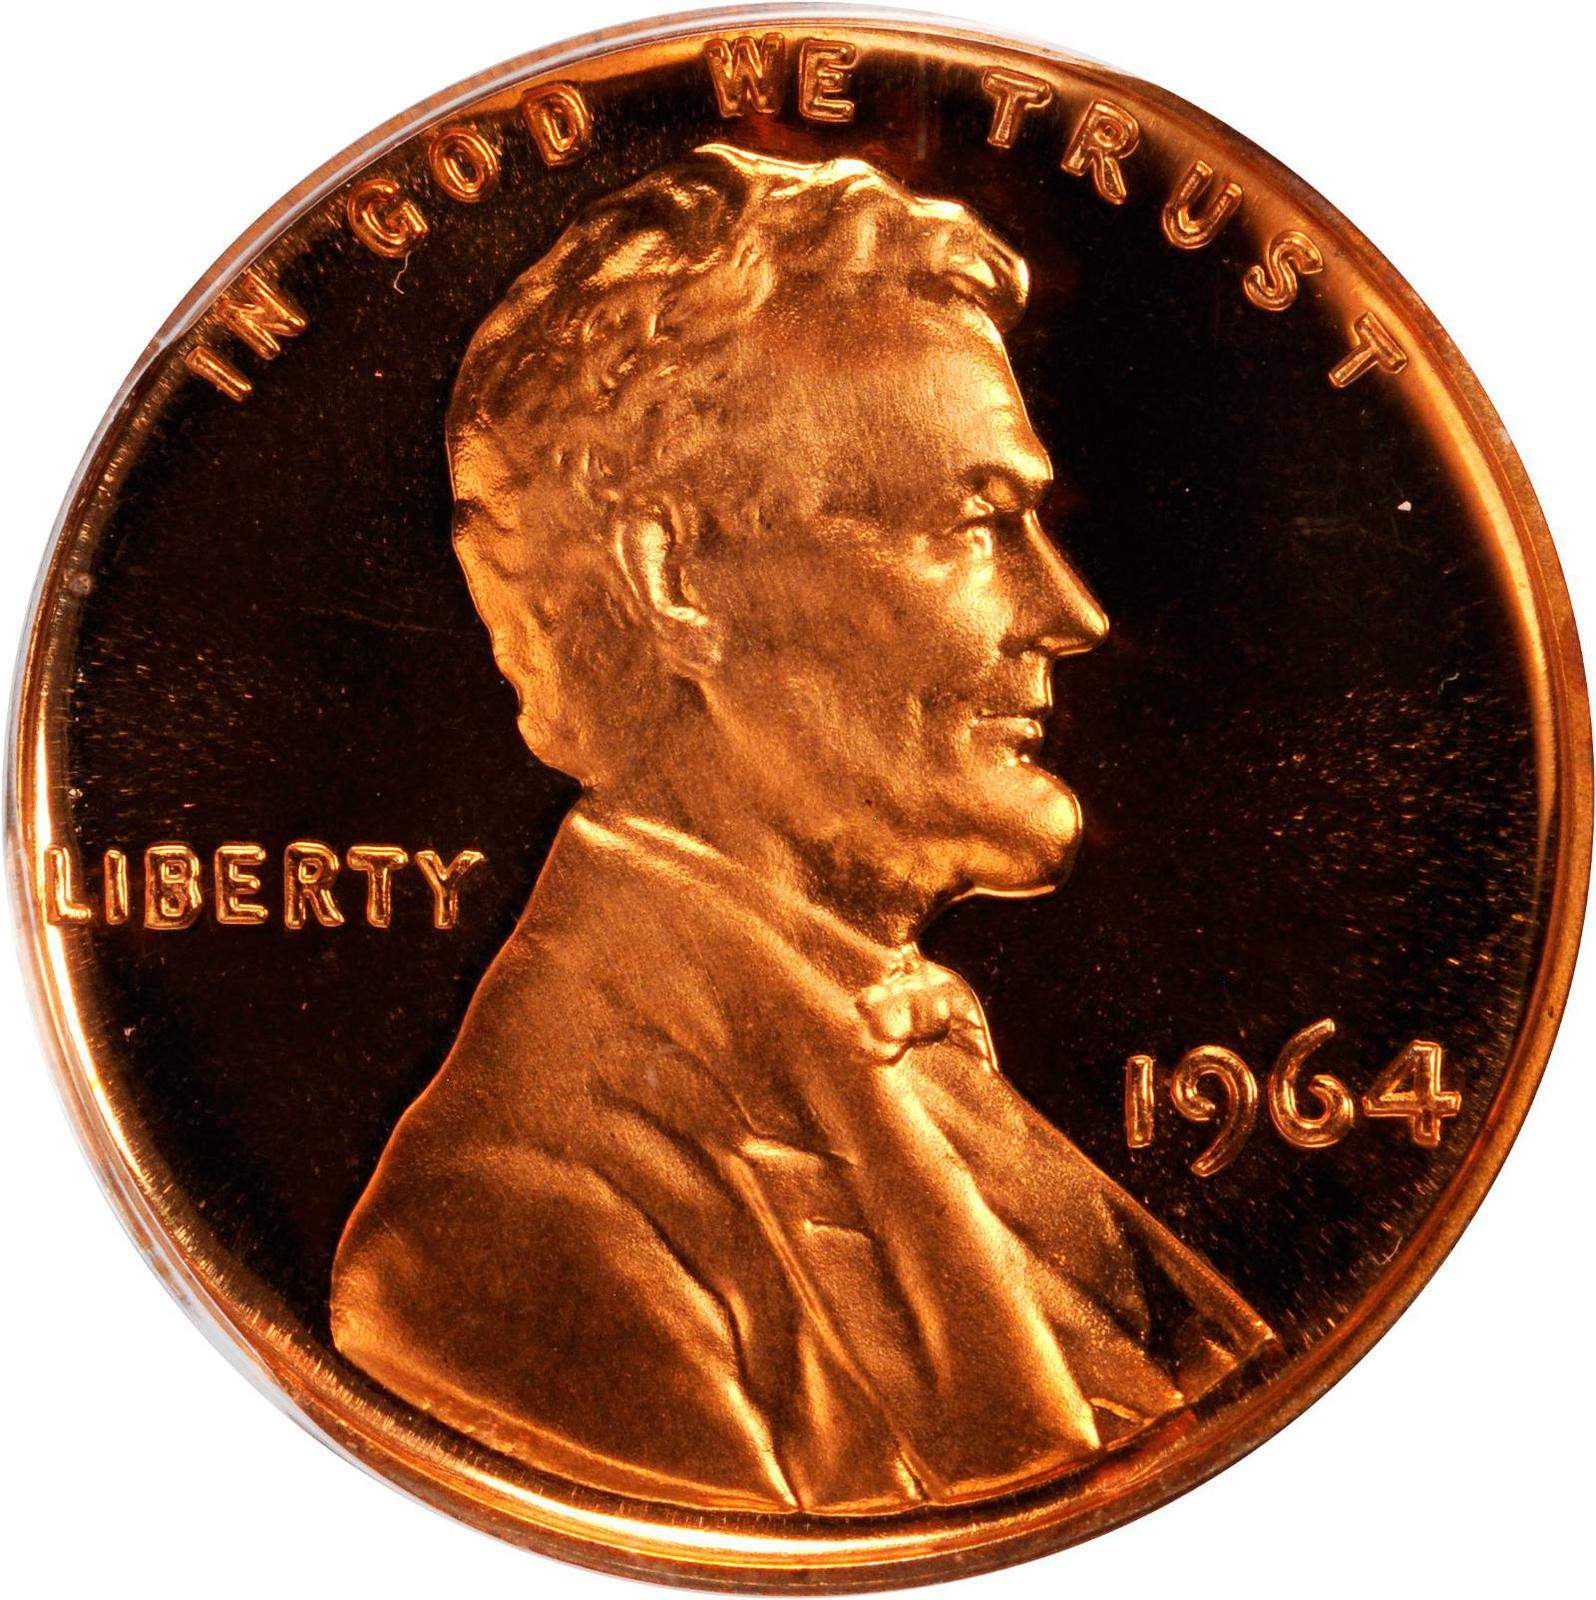 Value Of 1964 Lincoln Cents